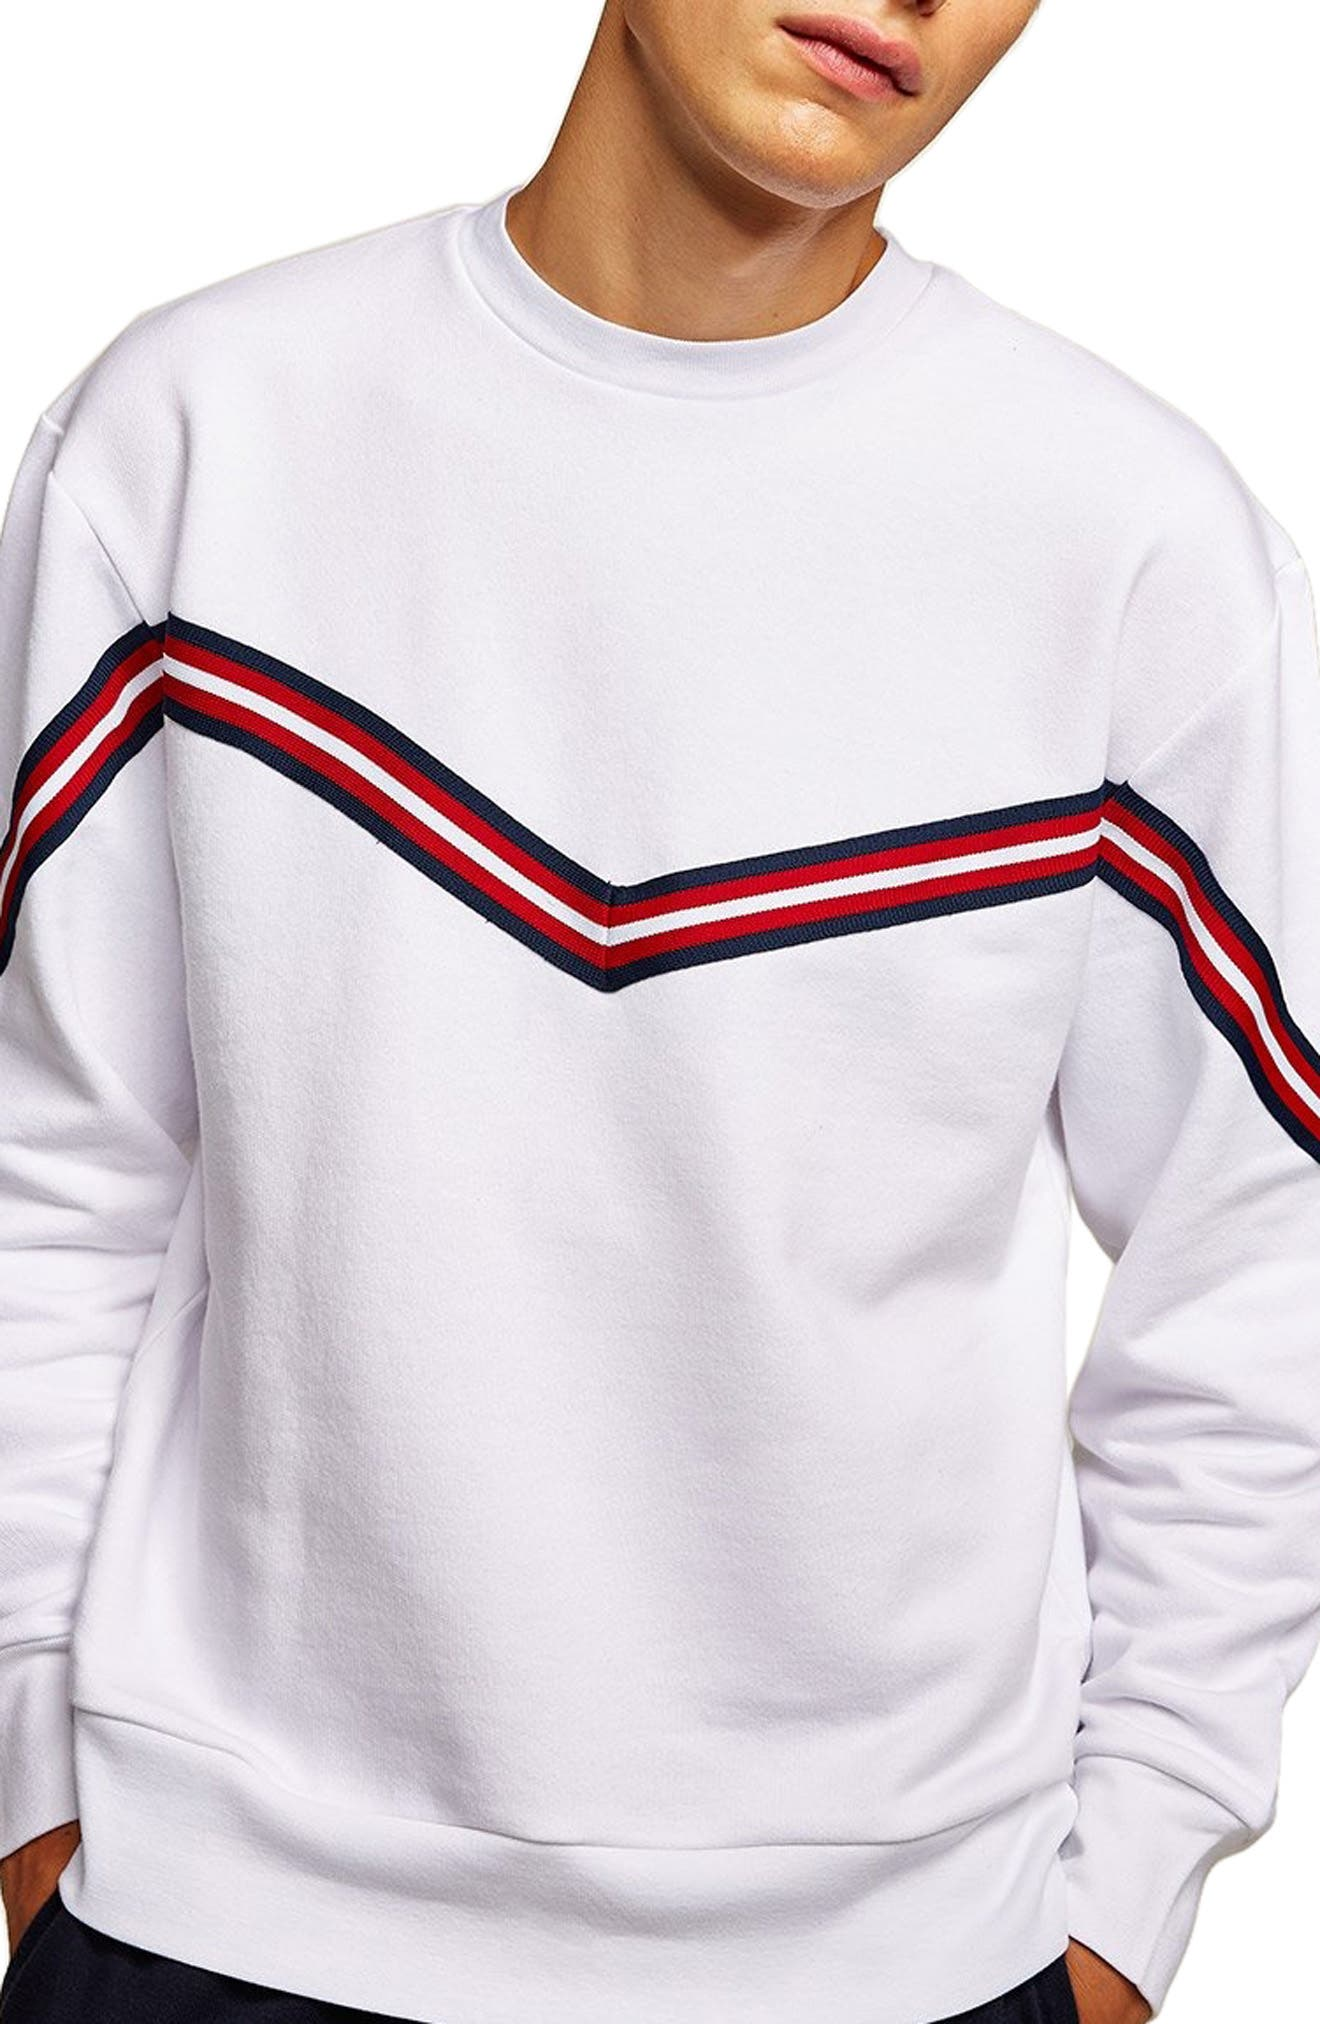 Chevron Tape Sweatshirt,                             Main thumbnail 1, color,                             WHITE MULTI